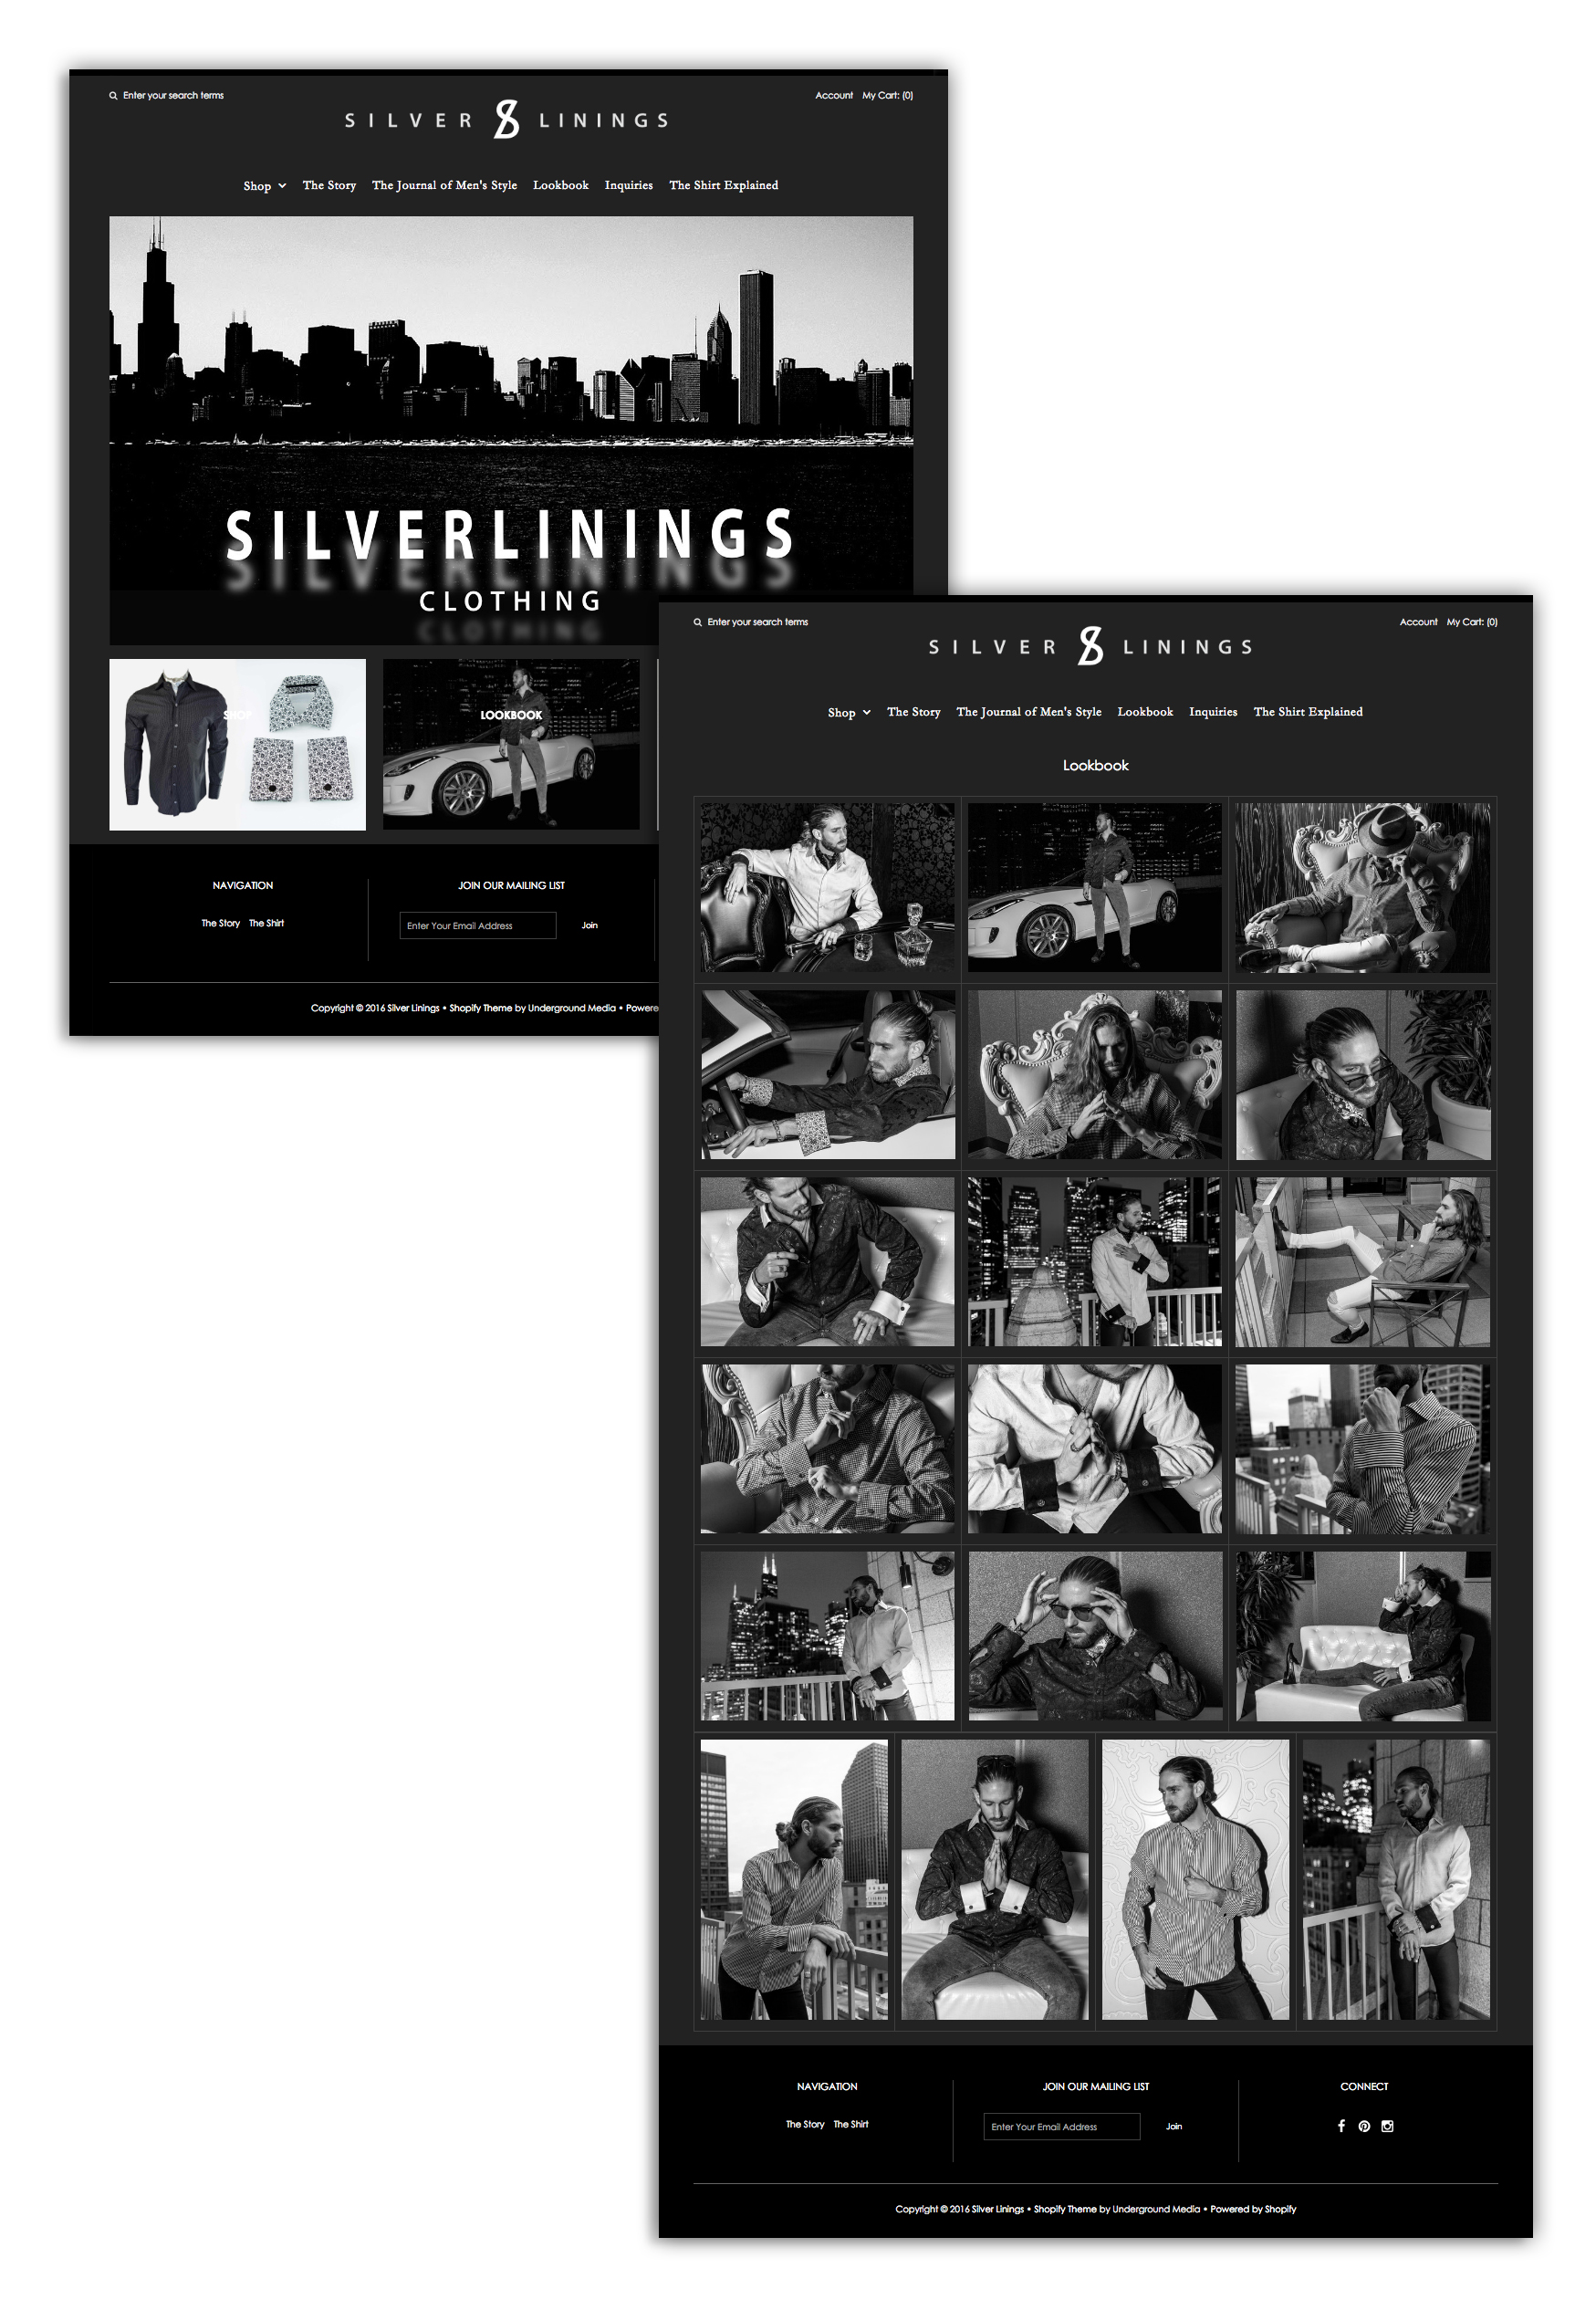 Silver Linings homepage and interior page